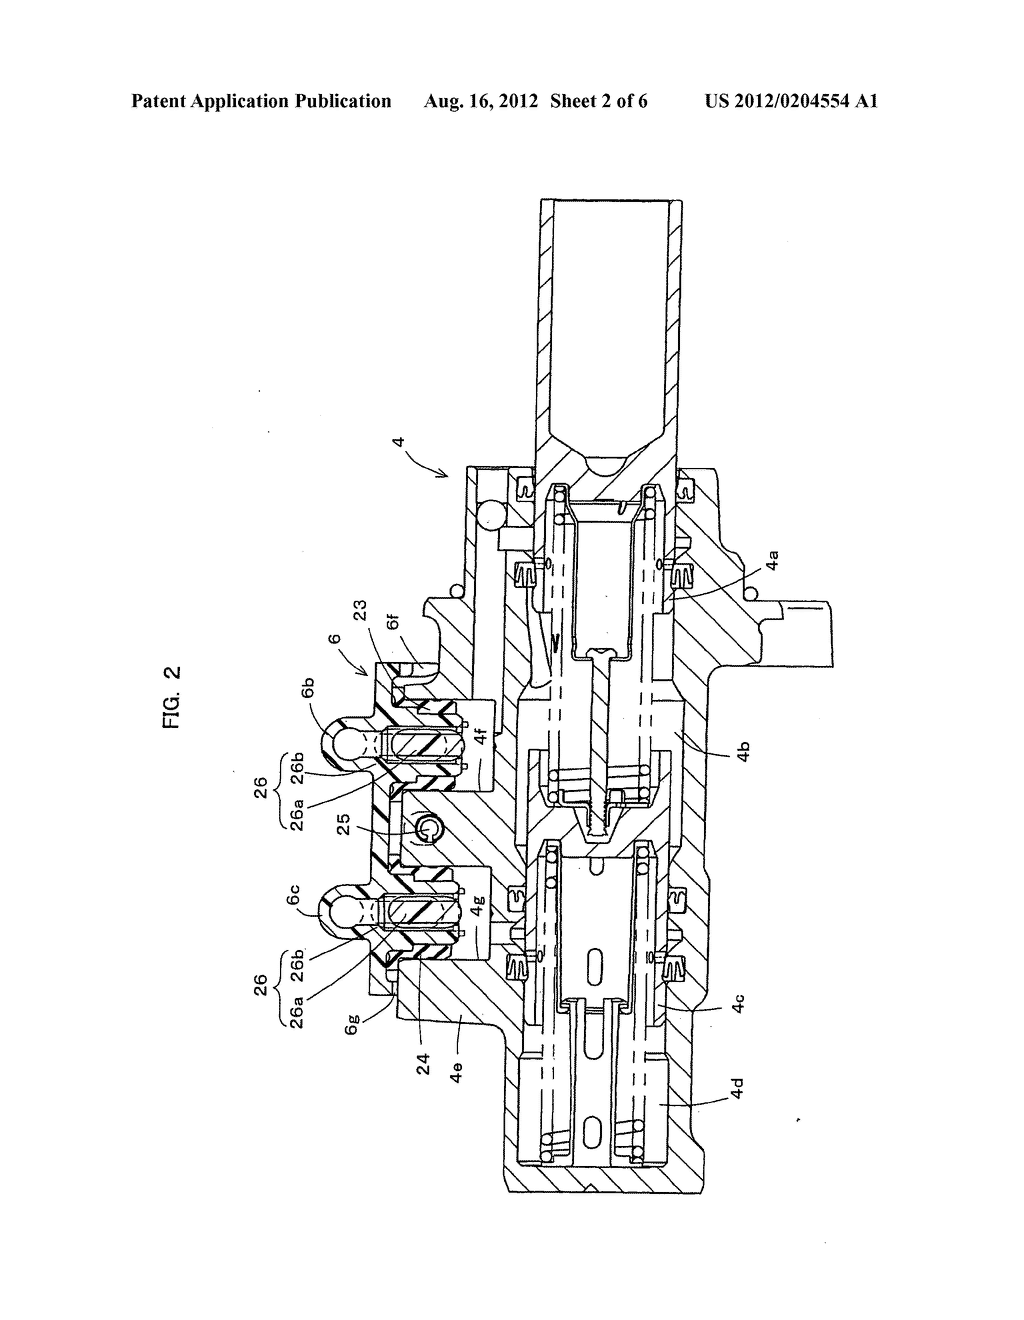 cooper gfci outlet wiring diagram ford focus mk1 central locking imageresizertool com